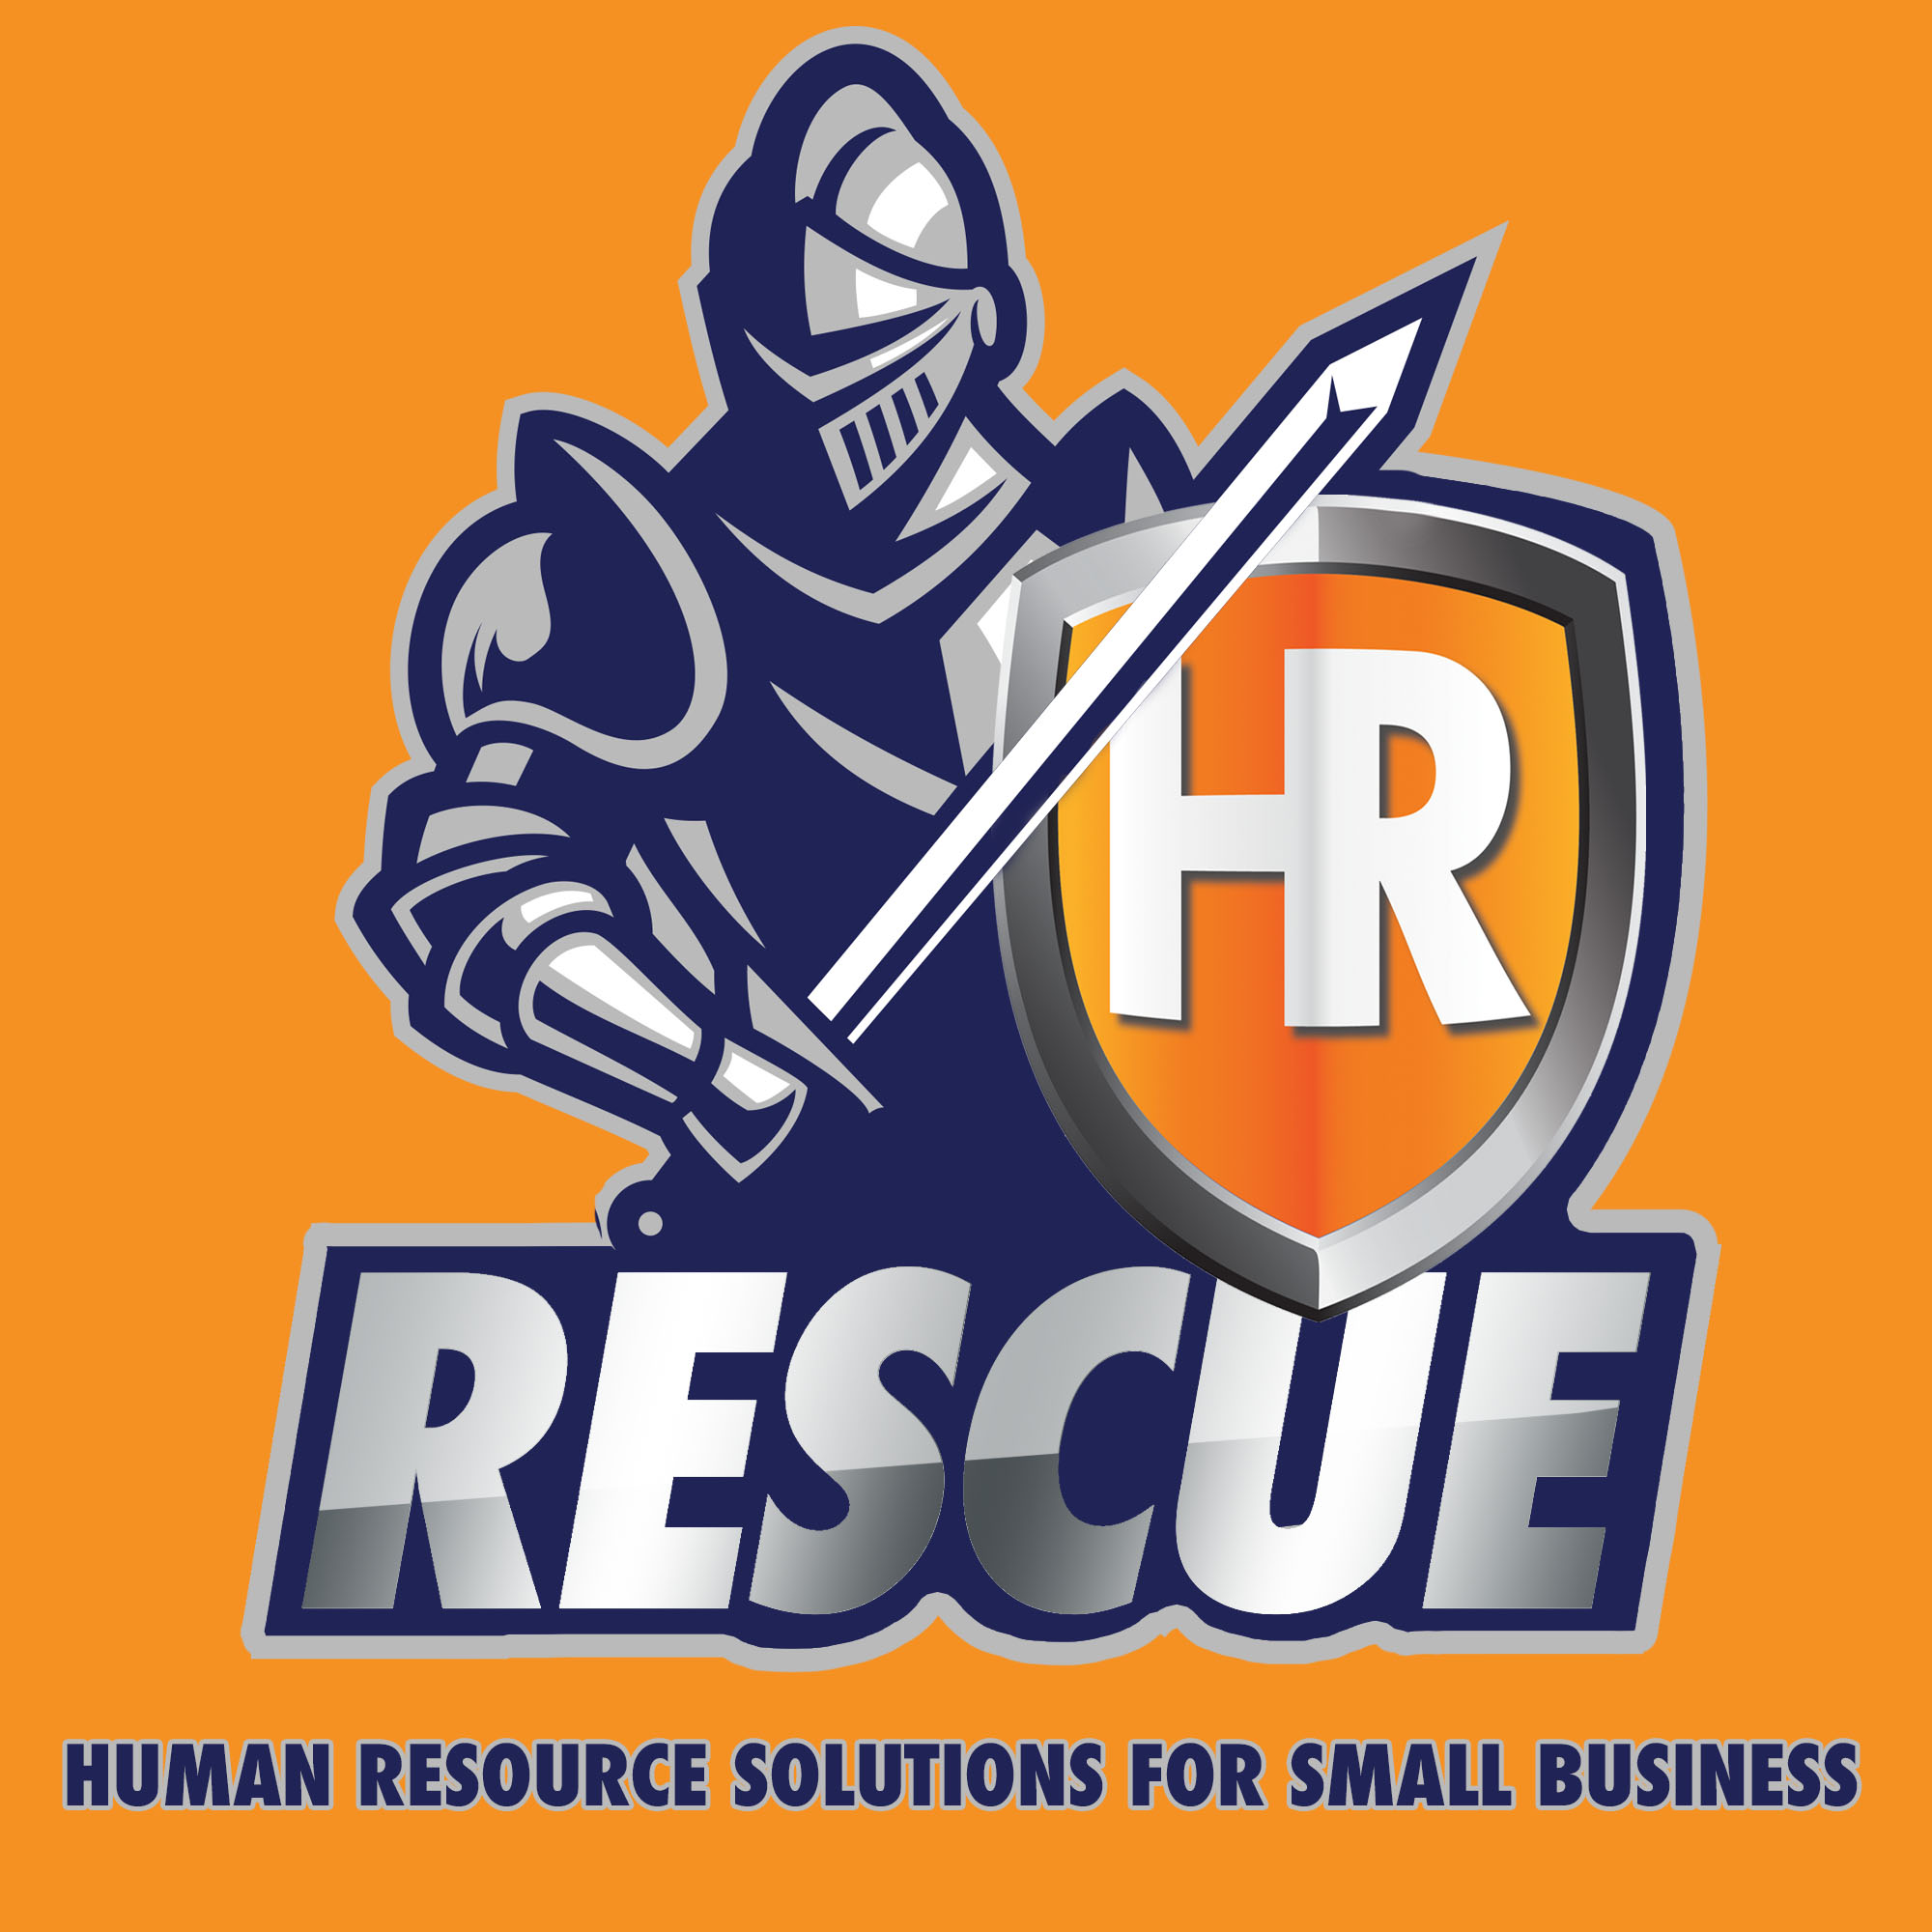 Show artwork for HR Rescue: Human Resource Solutions for Small Business